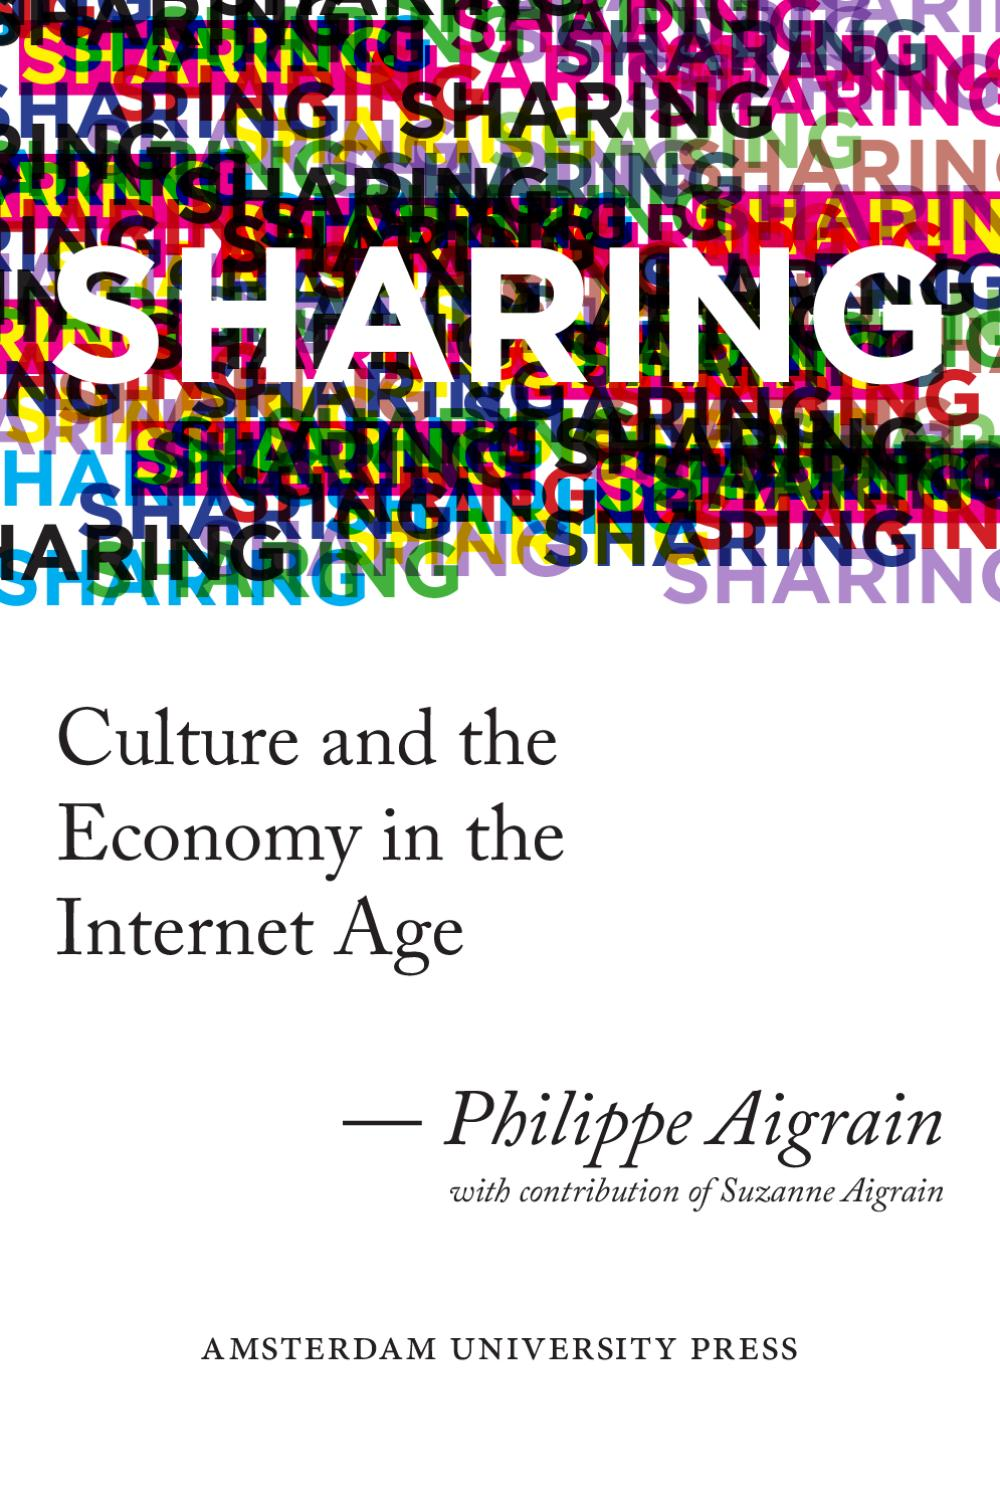 Sharing - Culture and the Economy in the Internet Age by